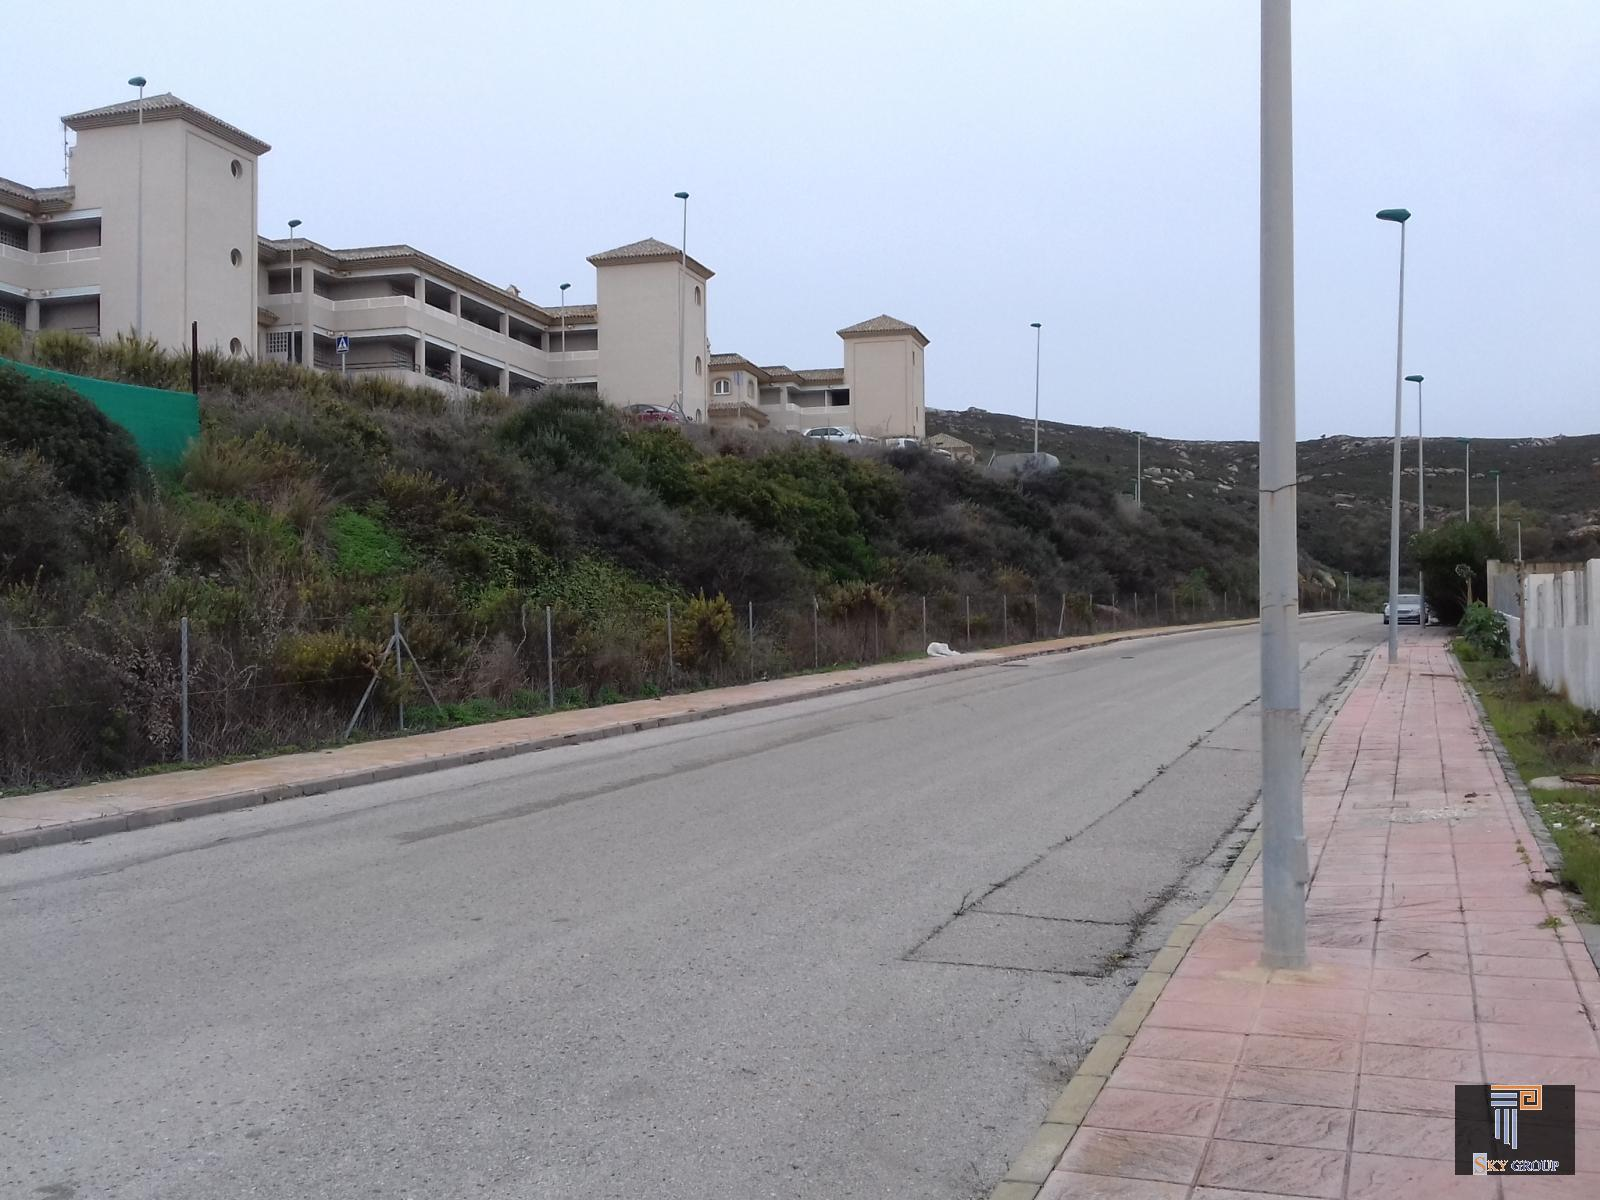 Plot for sale in Calle los altos de Santa Margarita (Alcaidesa), 70.000 €